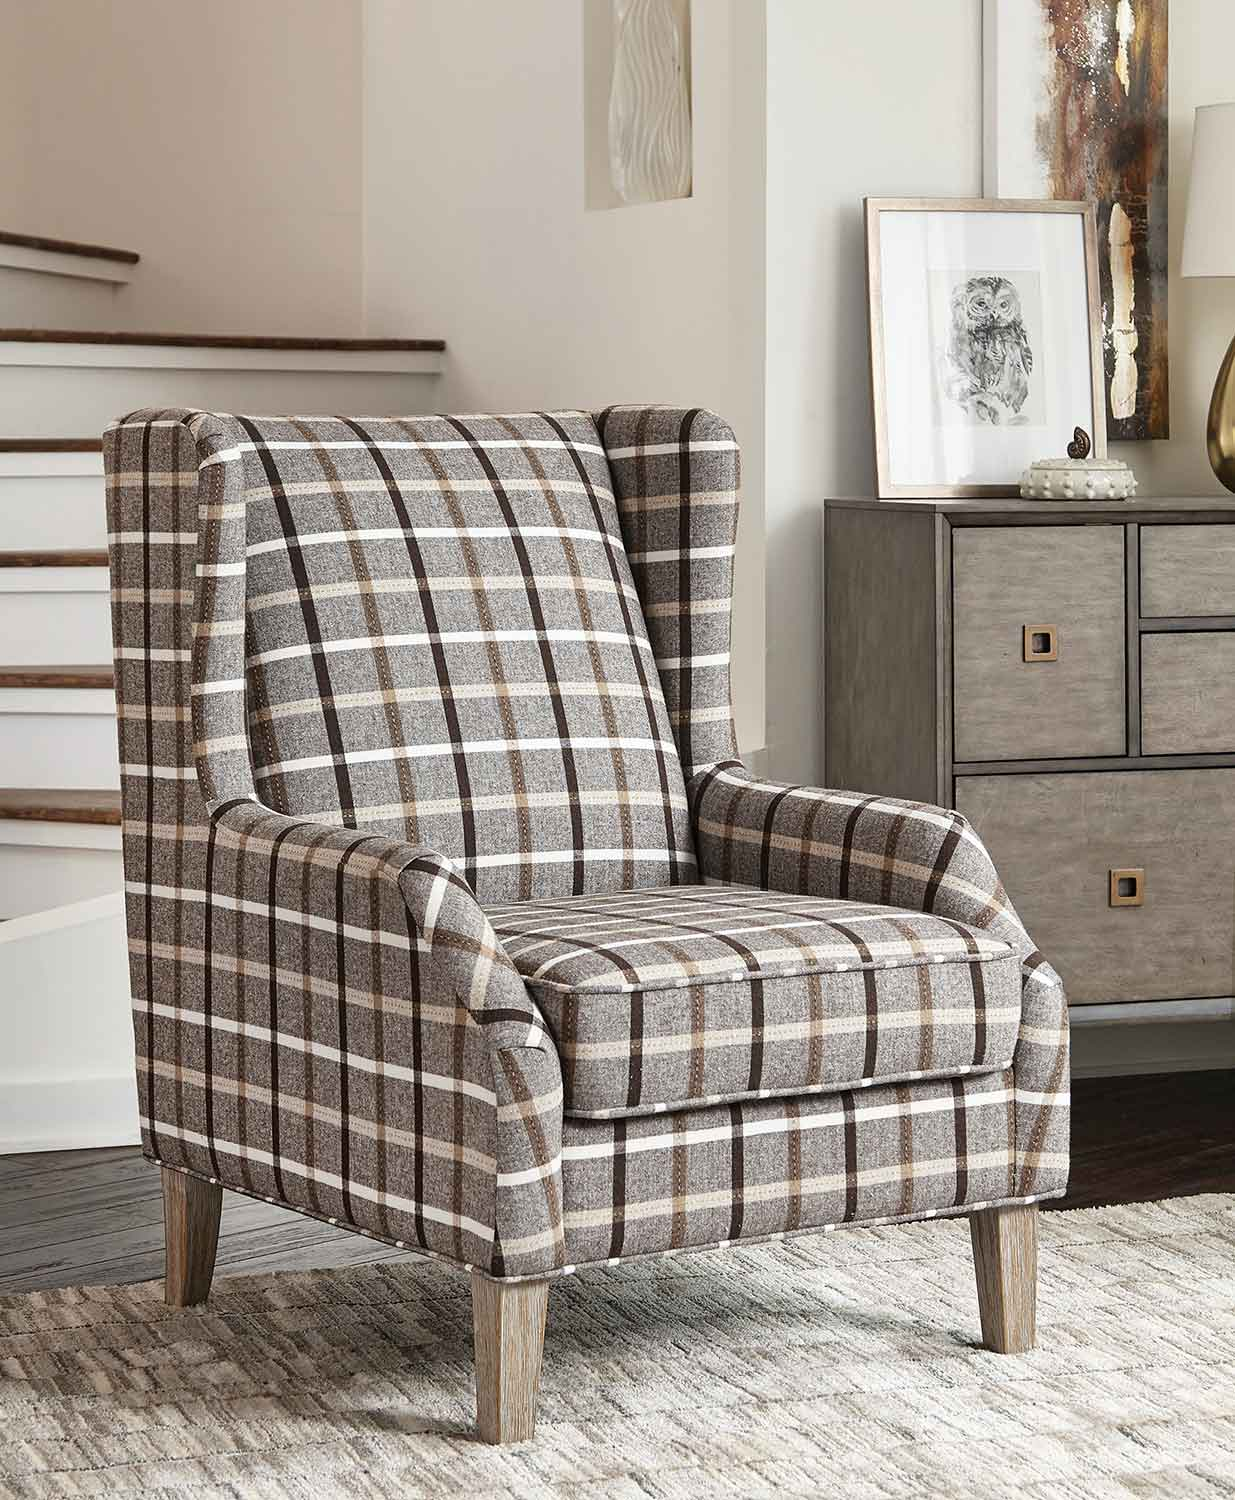 Coaster 904052 Accent Chair - Neutral Brown/Grey